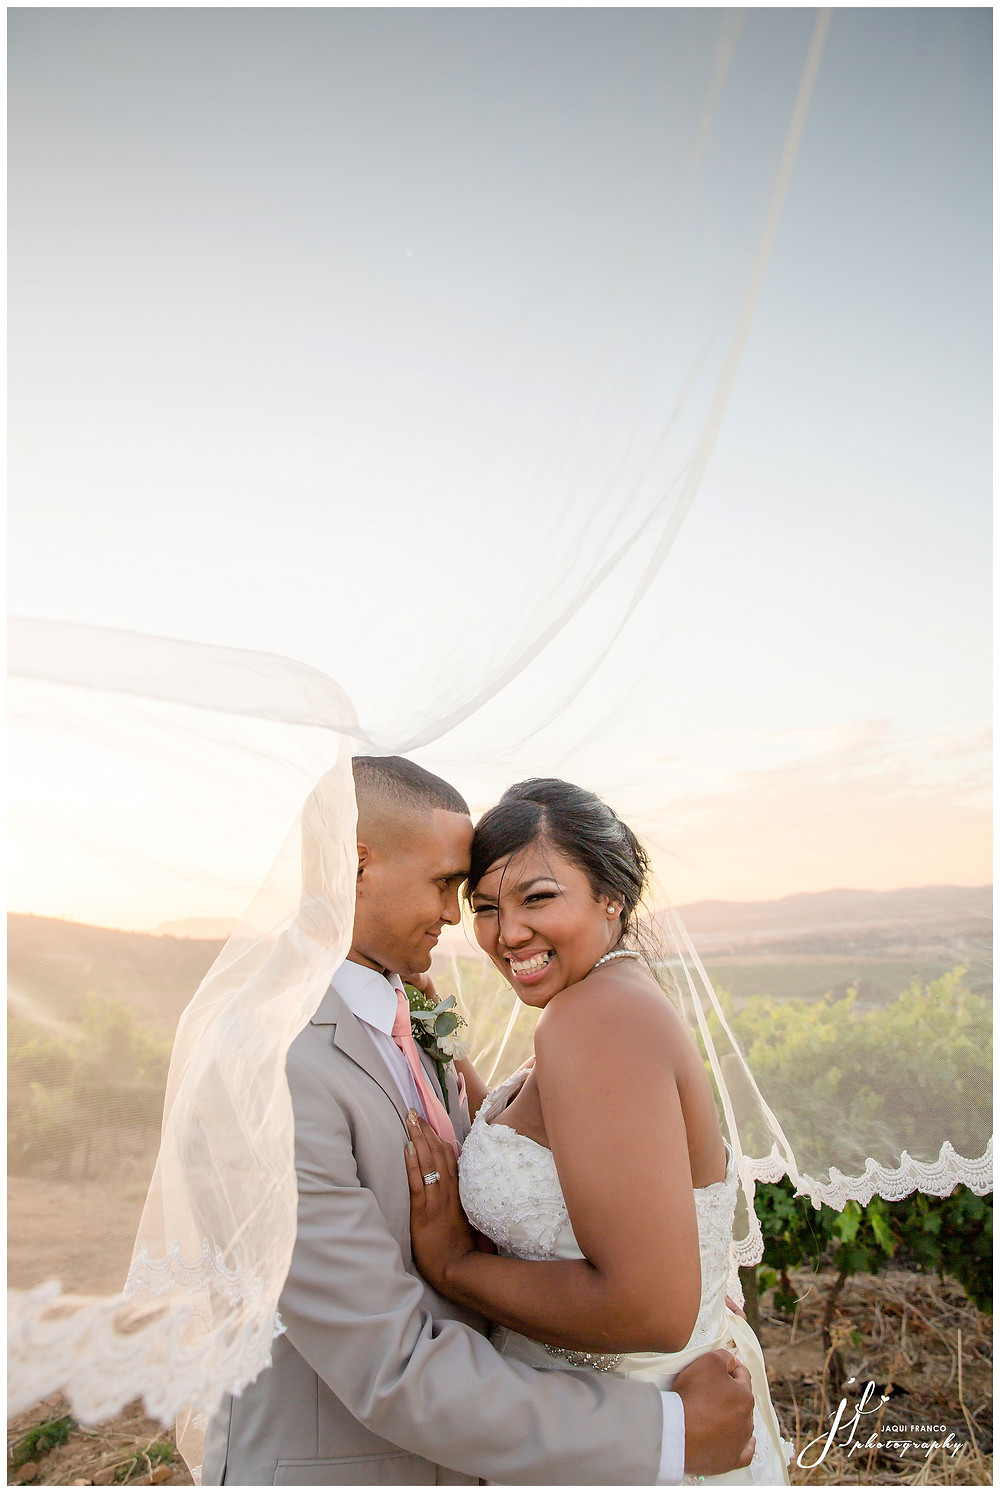 Alvin & Robin - wedding at Kaapzicht Wine Estate, Cape Town by Jaqui Franco Photography